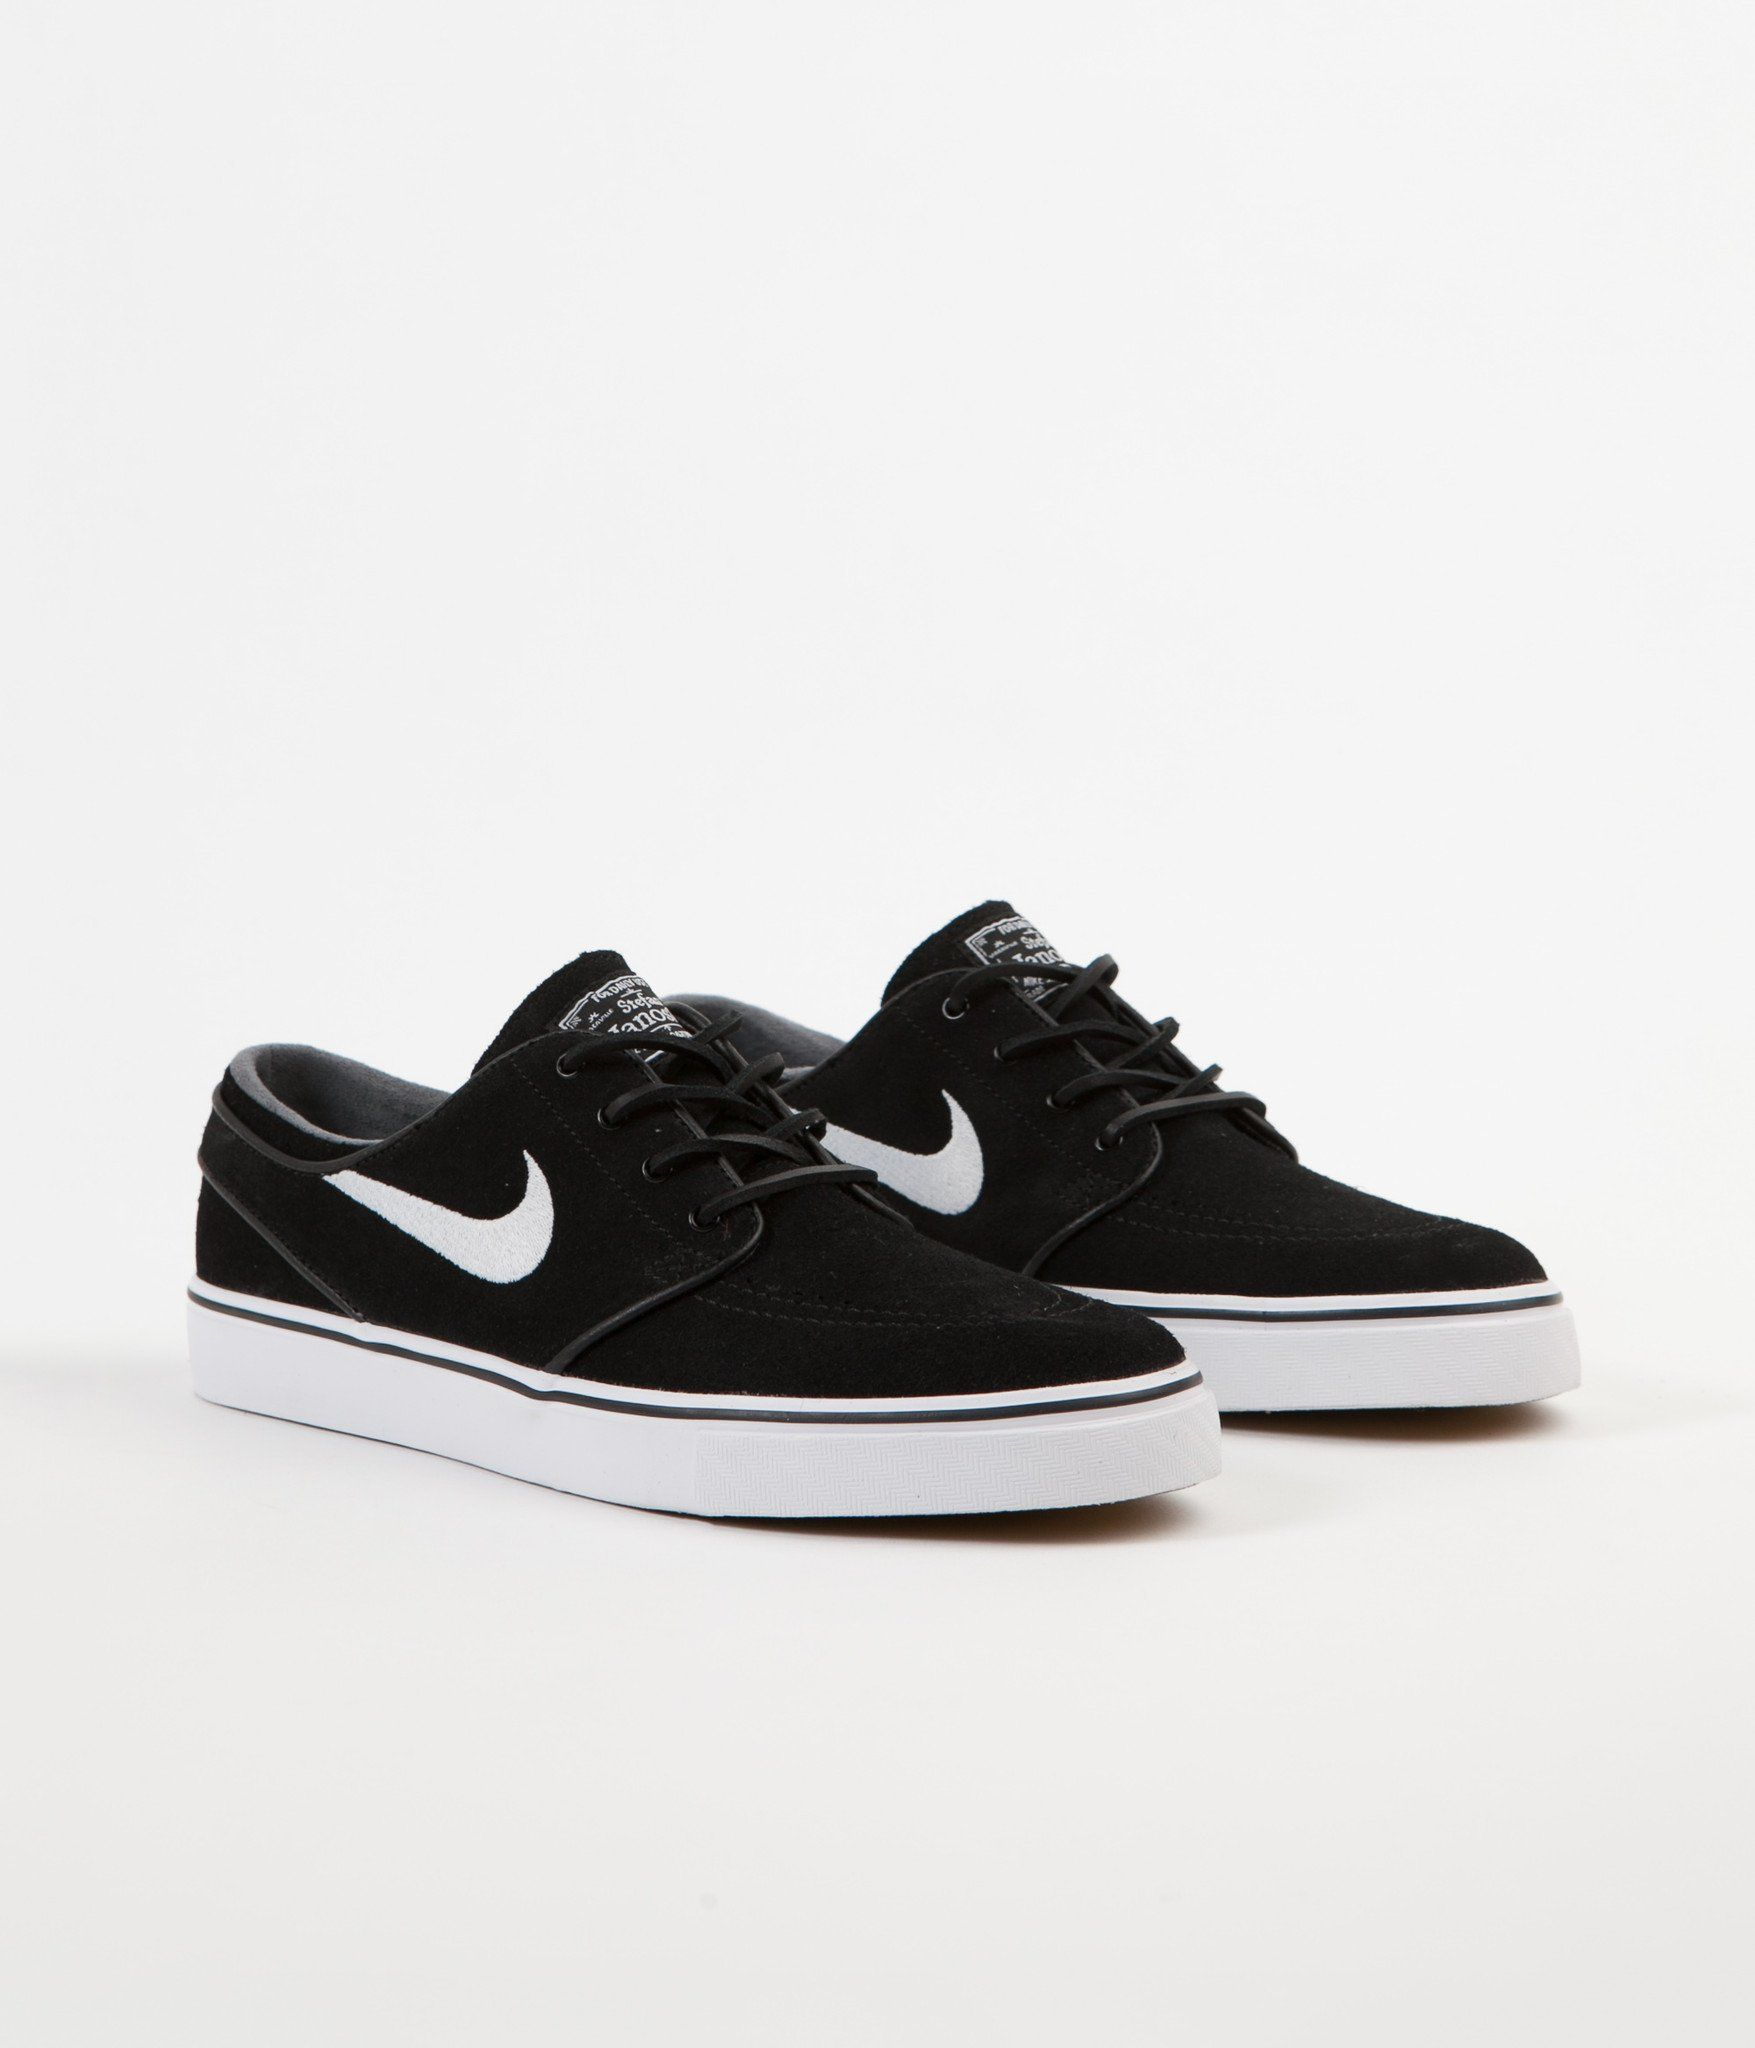 the best attitude 68b98 41605 Nike SB Stefan Janoski OG Shoes - Black   White - Gum Light Brown